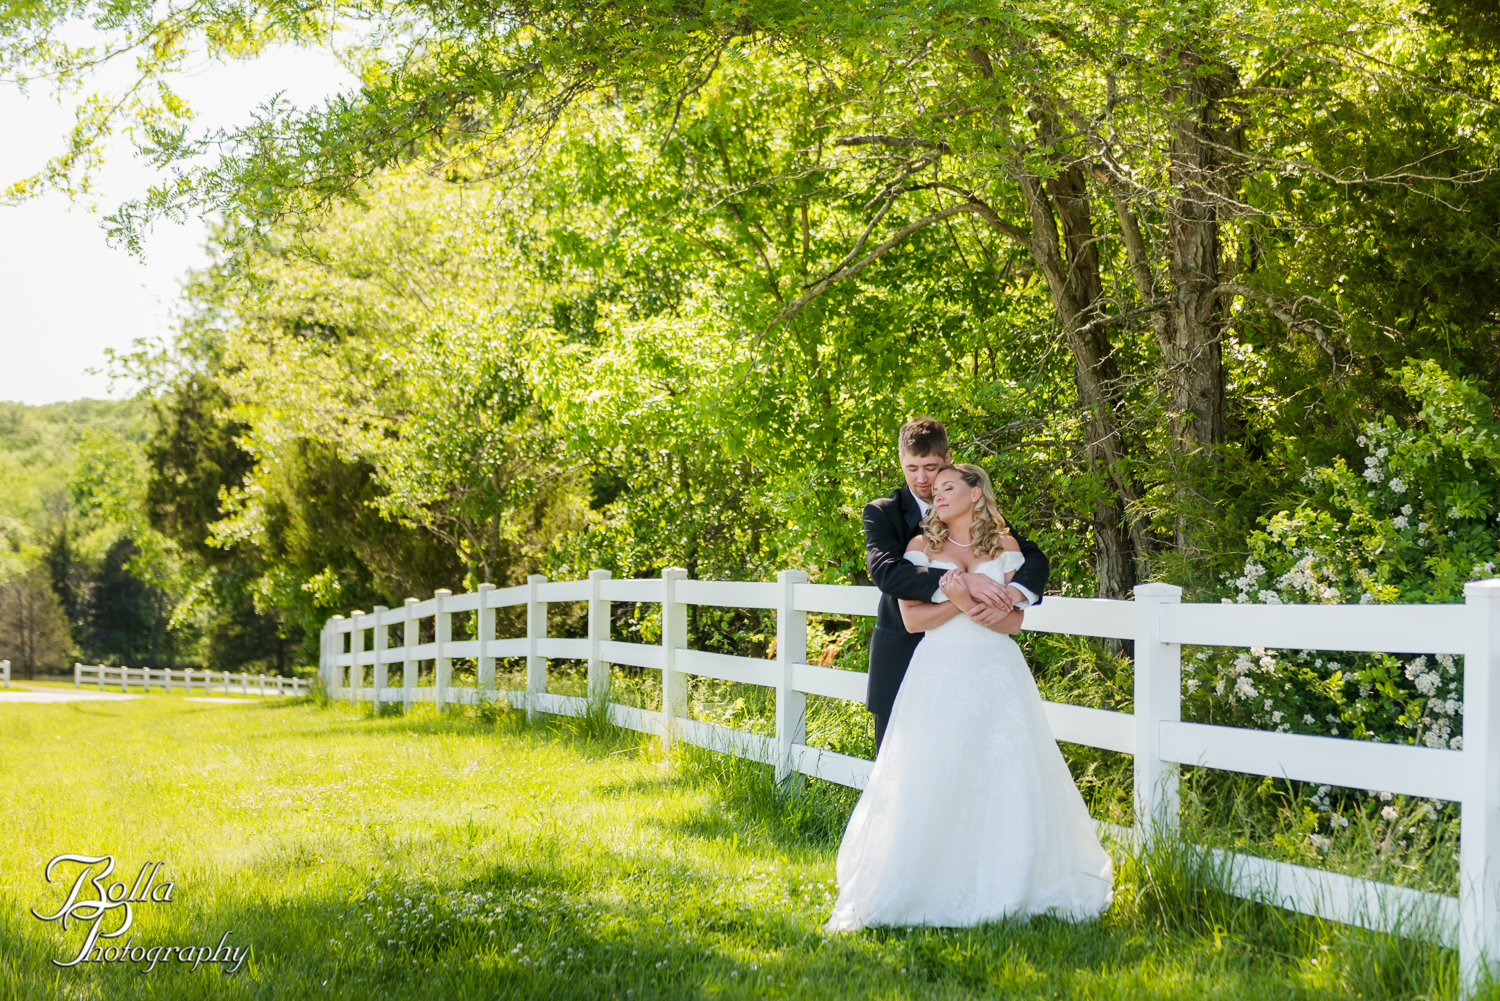 Bolla_Photography_St_Louis_wedding_photographer_Innsbrook_Resort-0004.jpg